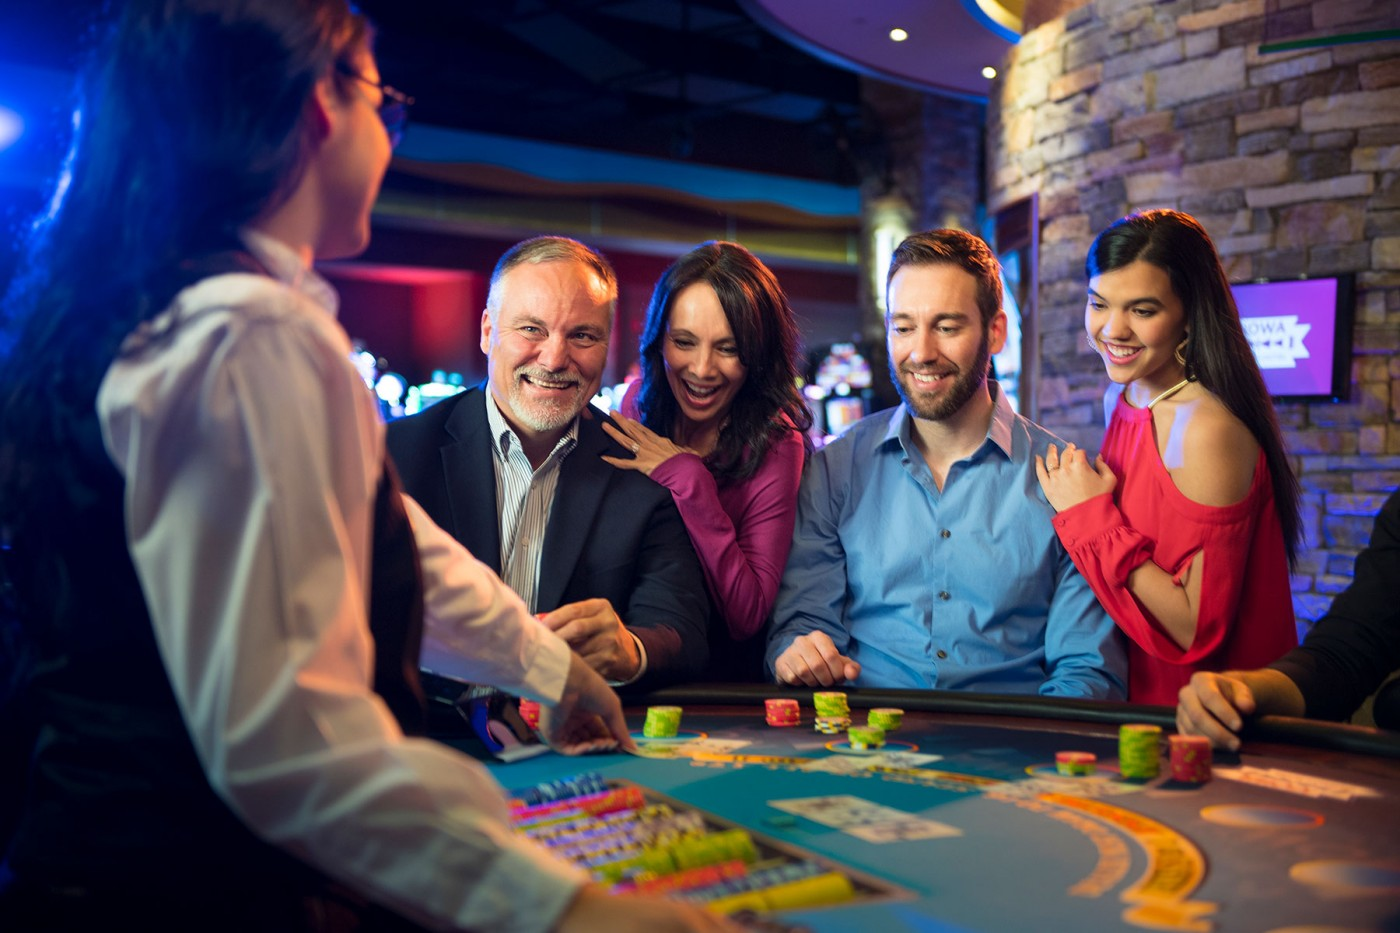 The Key to Winning at Roulette – Be Patient